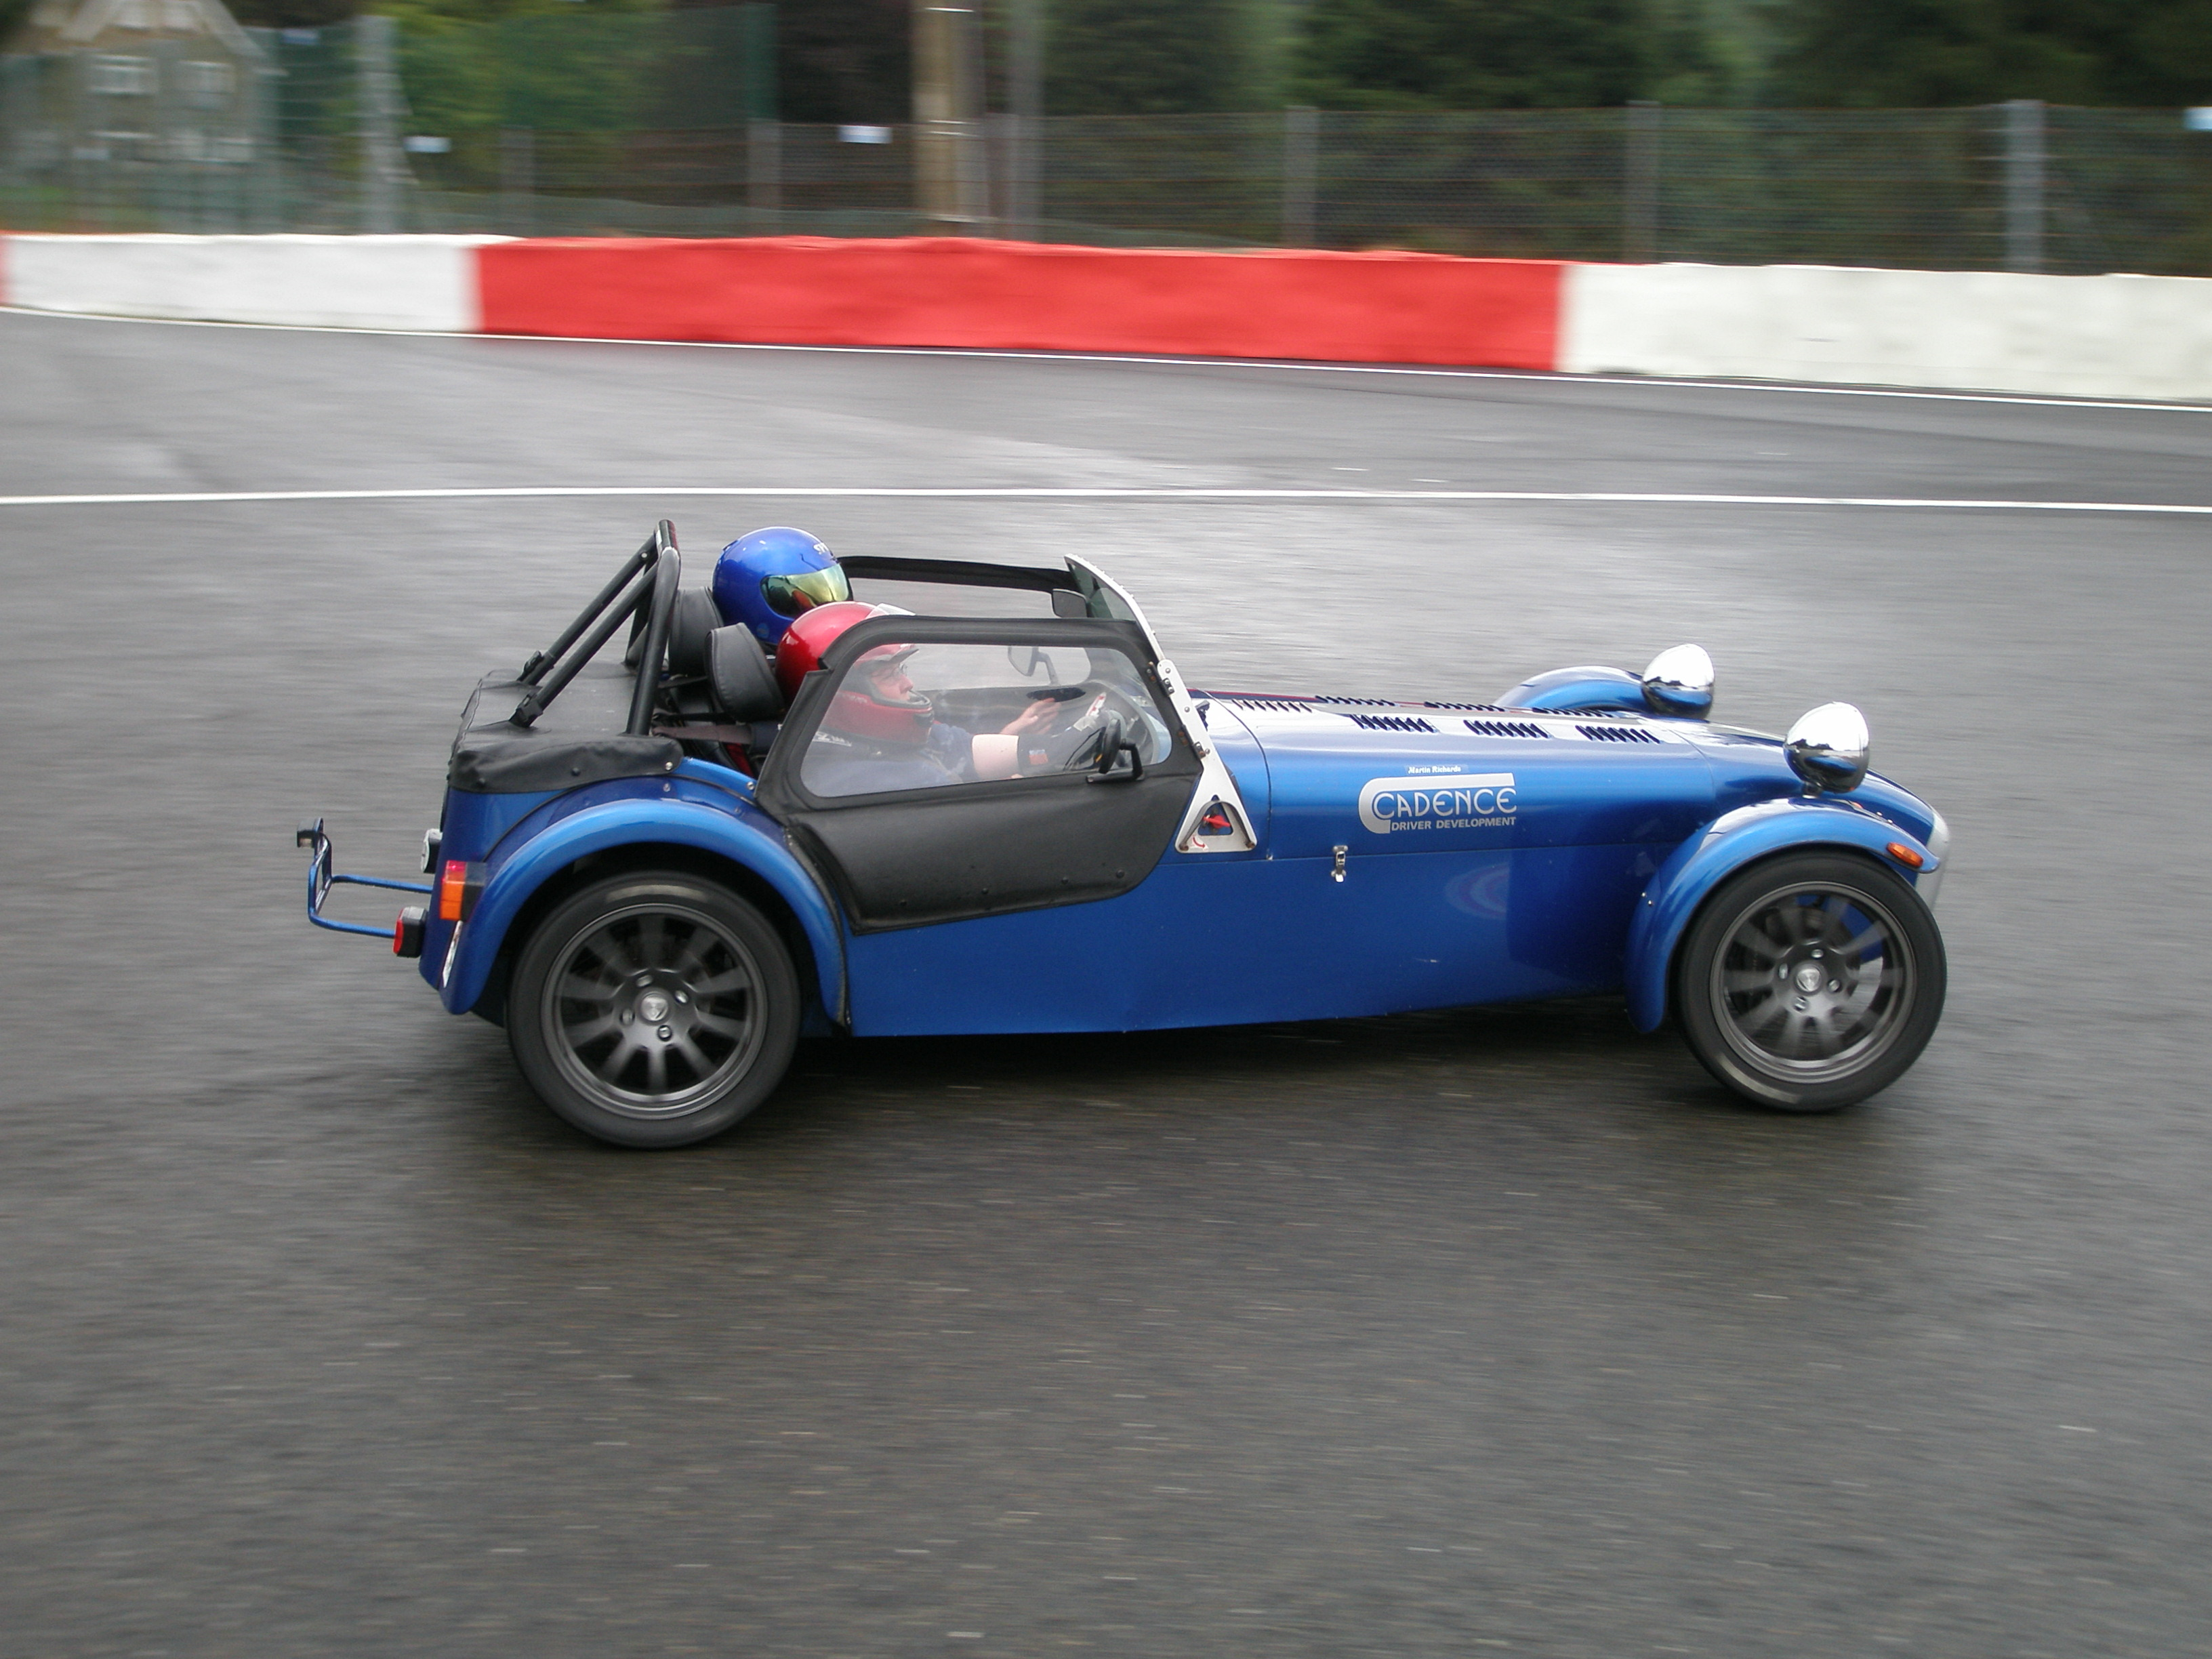 1991 Caterham Super 7 #8